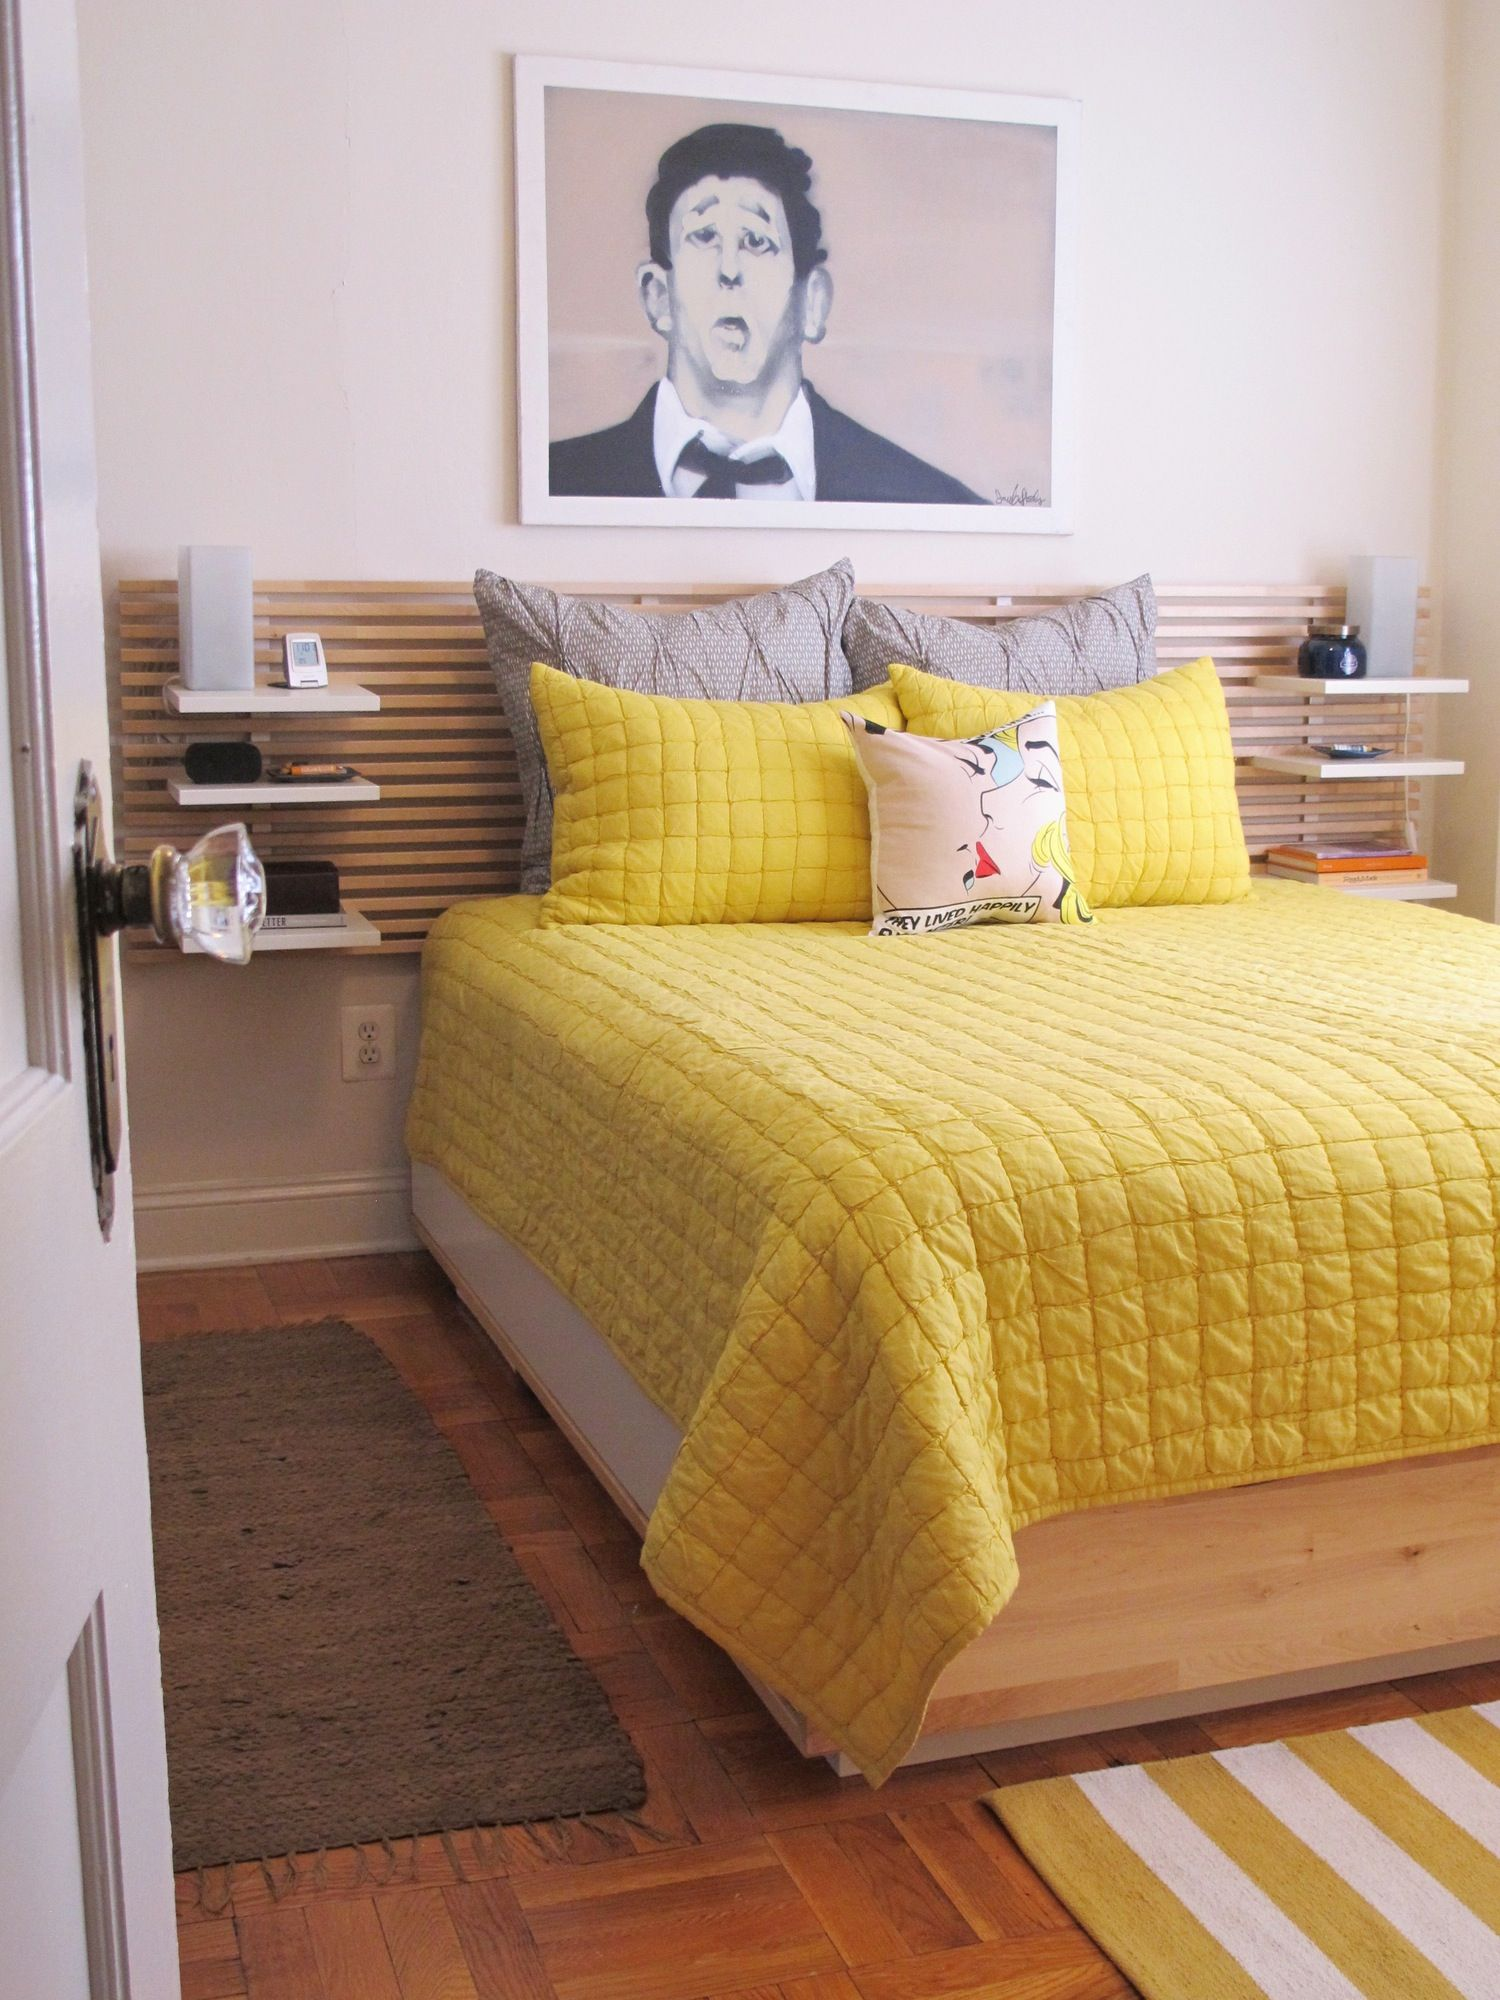 Cuscino Alla Francese Ikea rethink it: 4 ways to use ikea mandal that's not a headboard